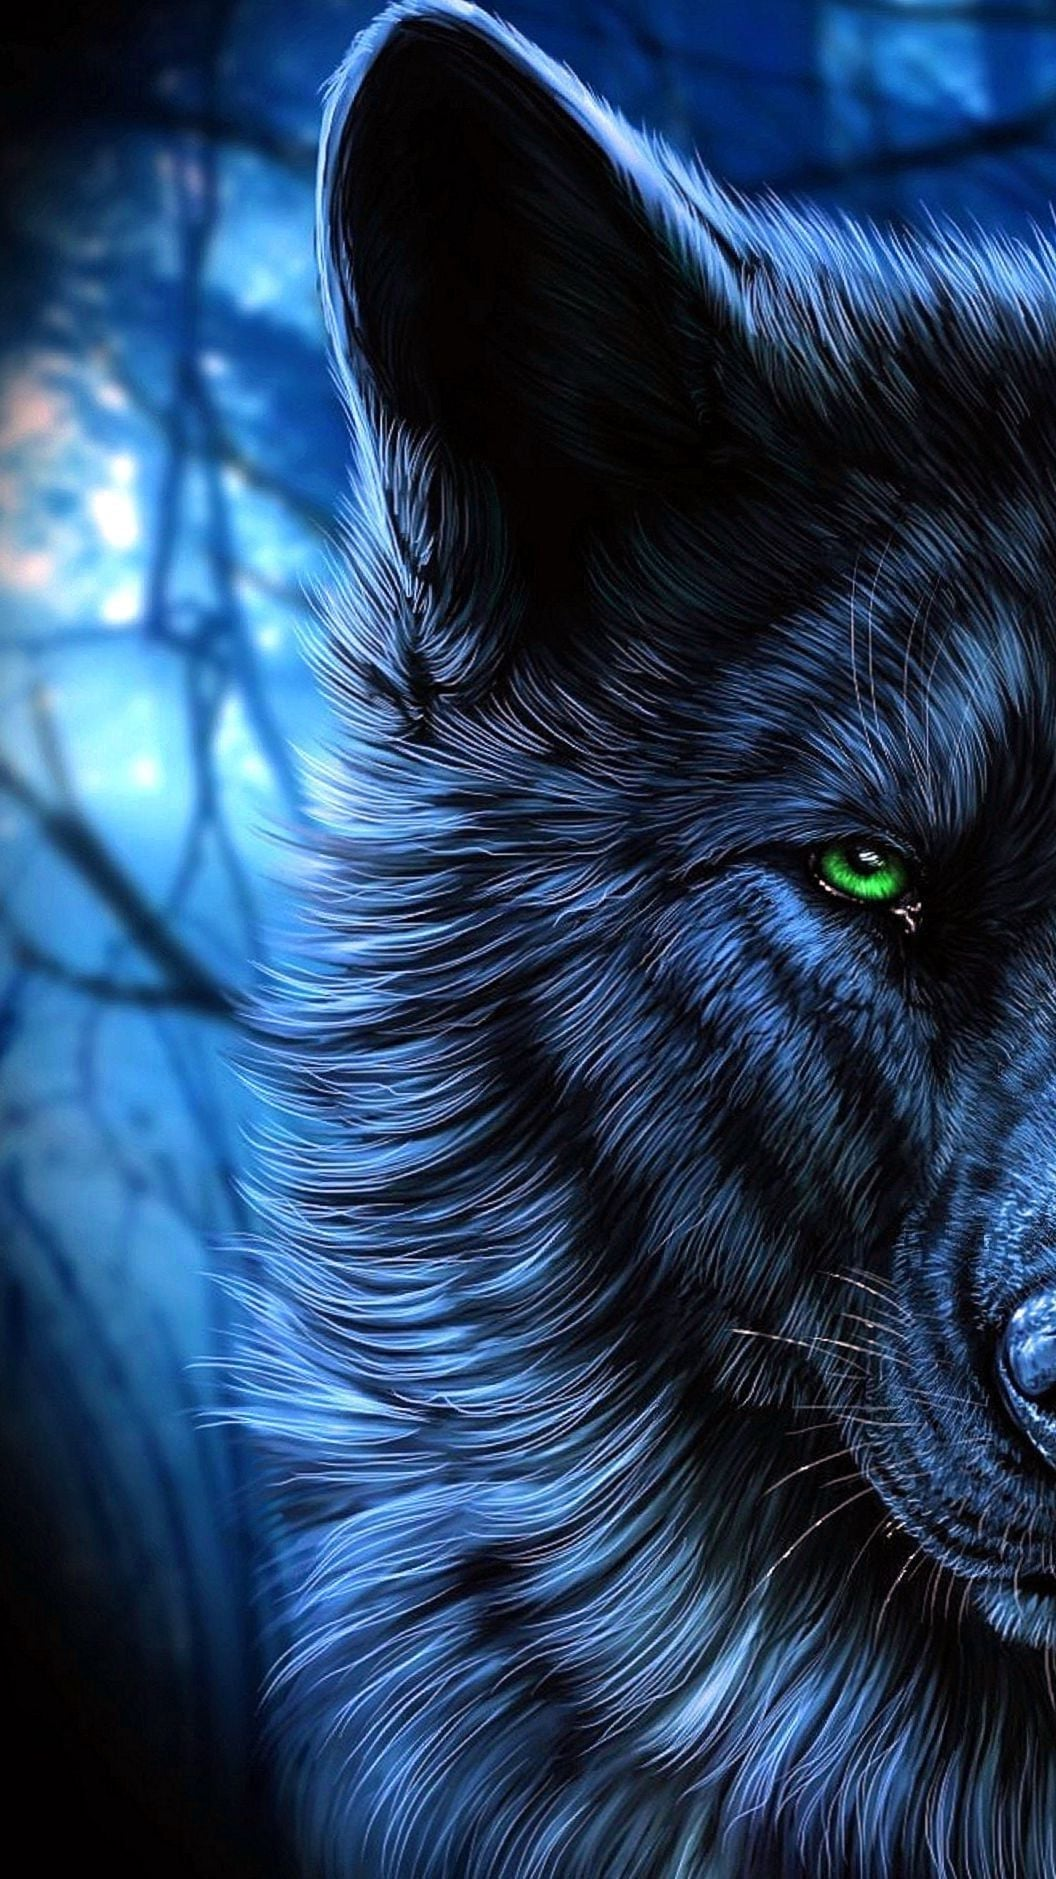 62+] Images of Wolf Wallpapers on